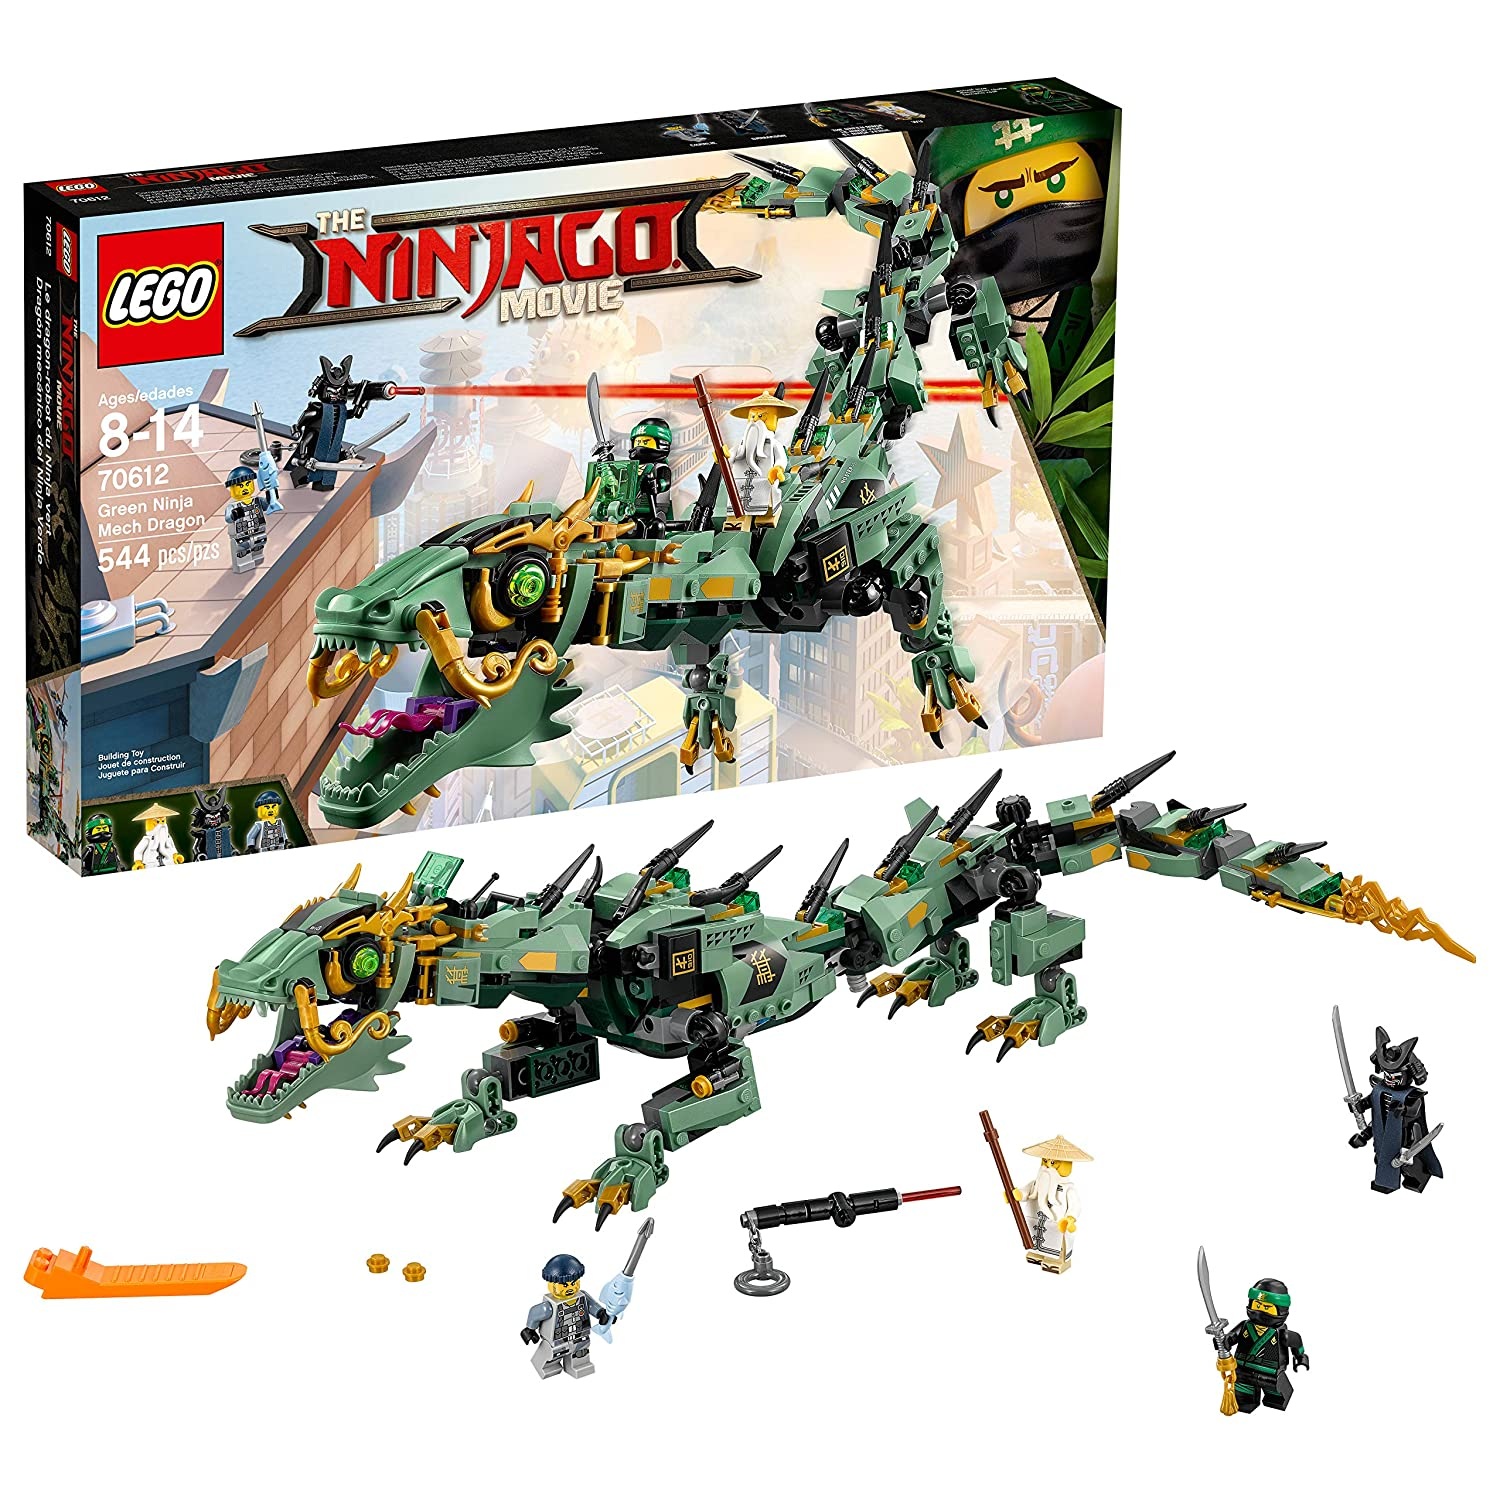 LEGO Ninjago Movie Green Ninja Mech Dragon 70612 Ninja Toy with Dragon Figurine Building Kit (544 Piece)